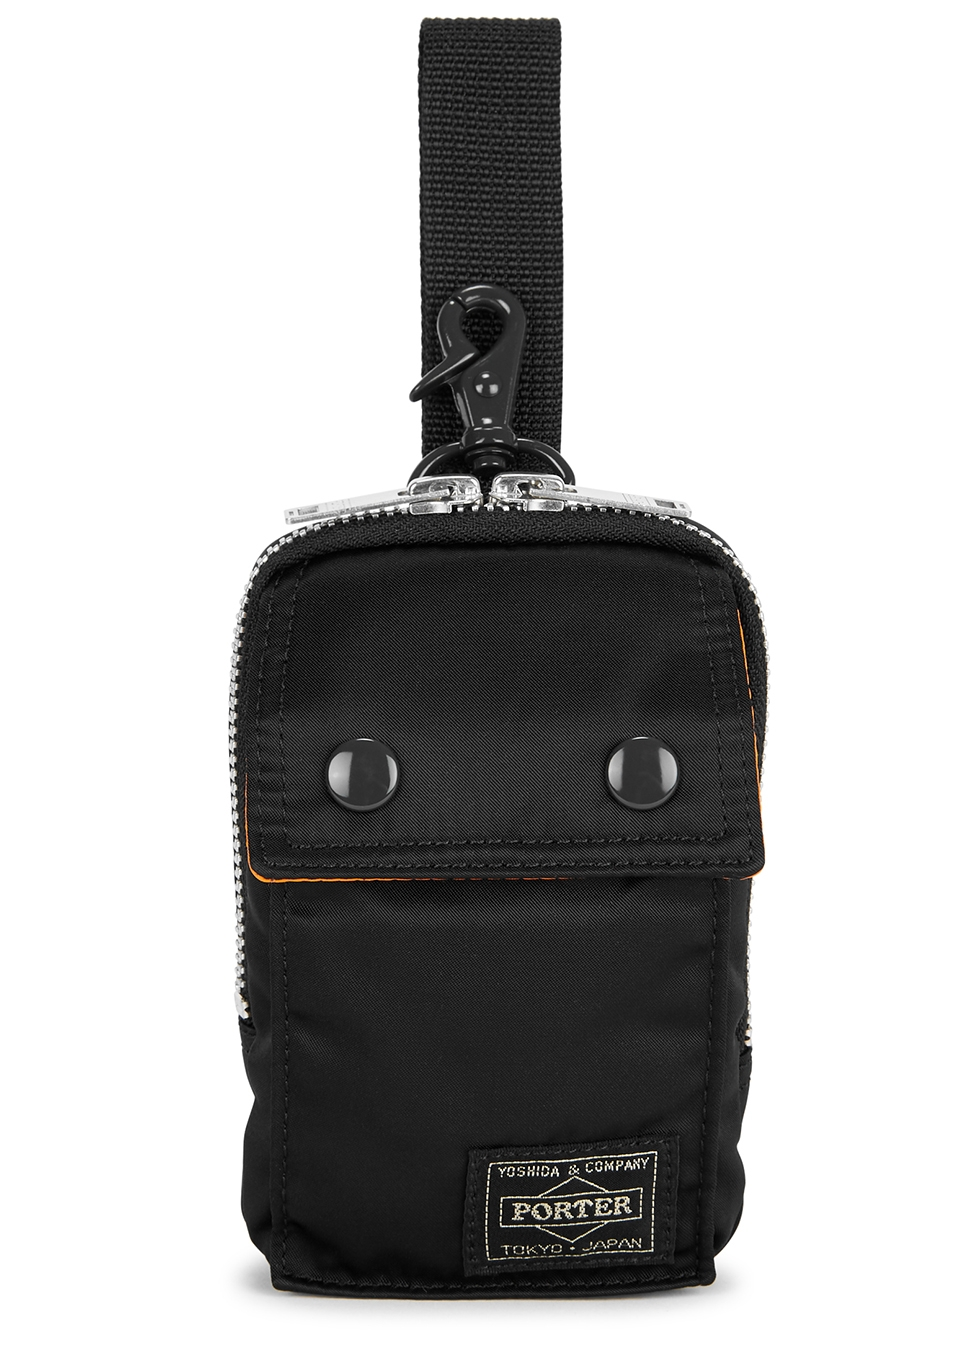 Small black padded nylon pouch